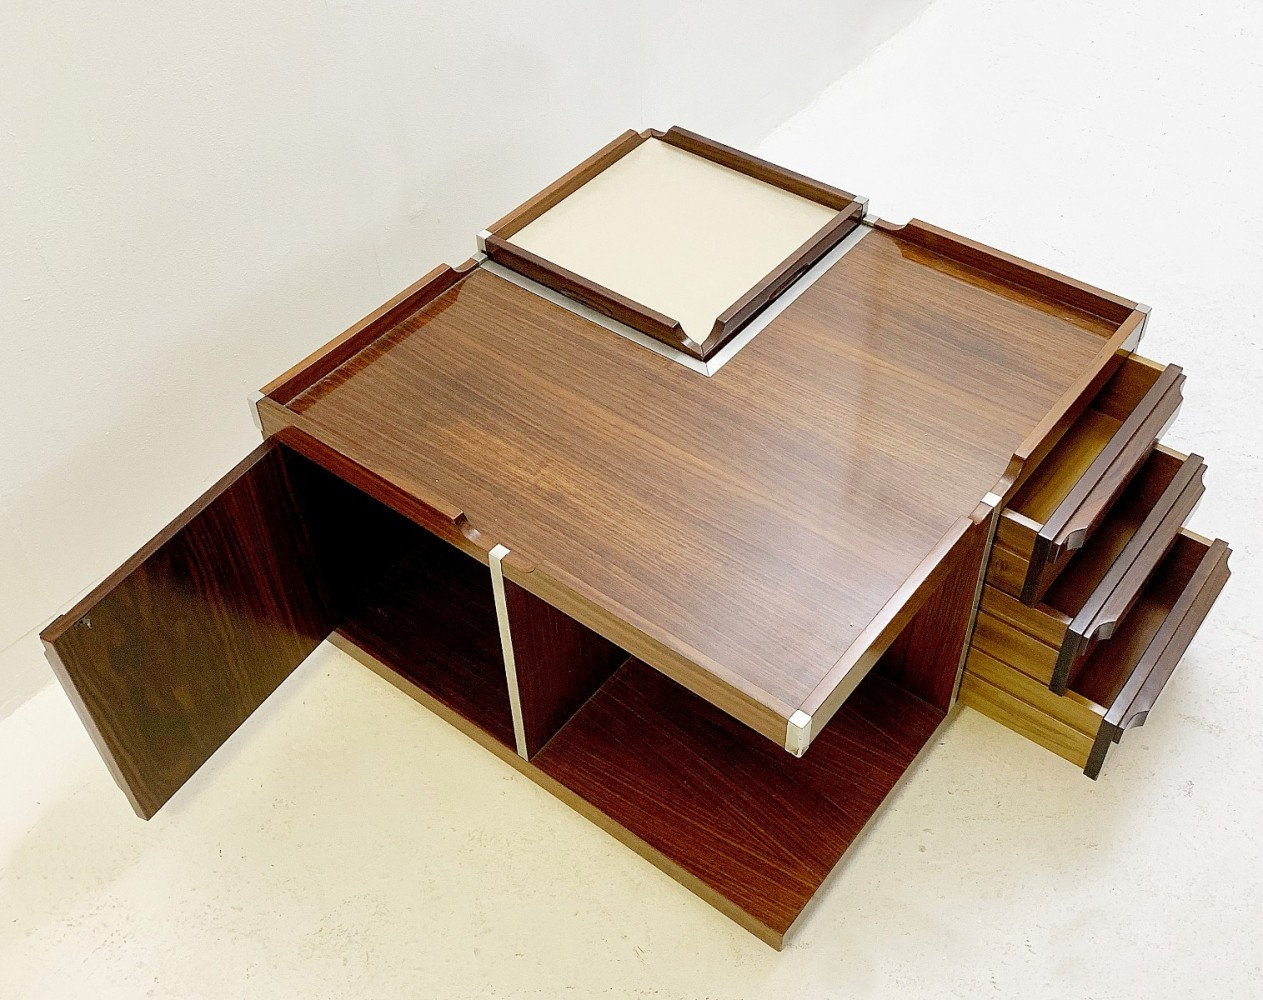 Italian bar coffee table, 1960s